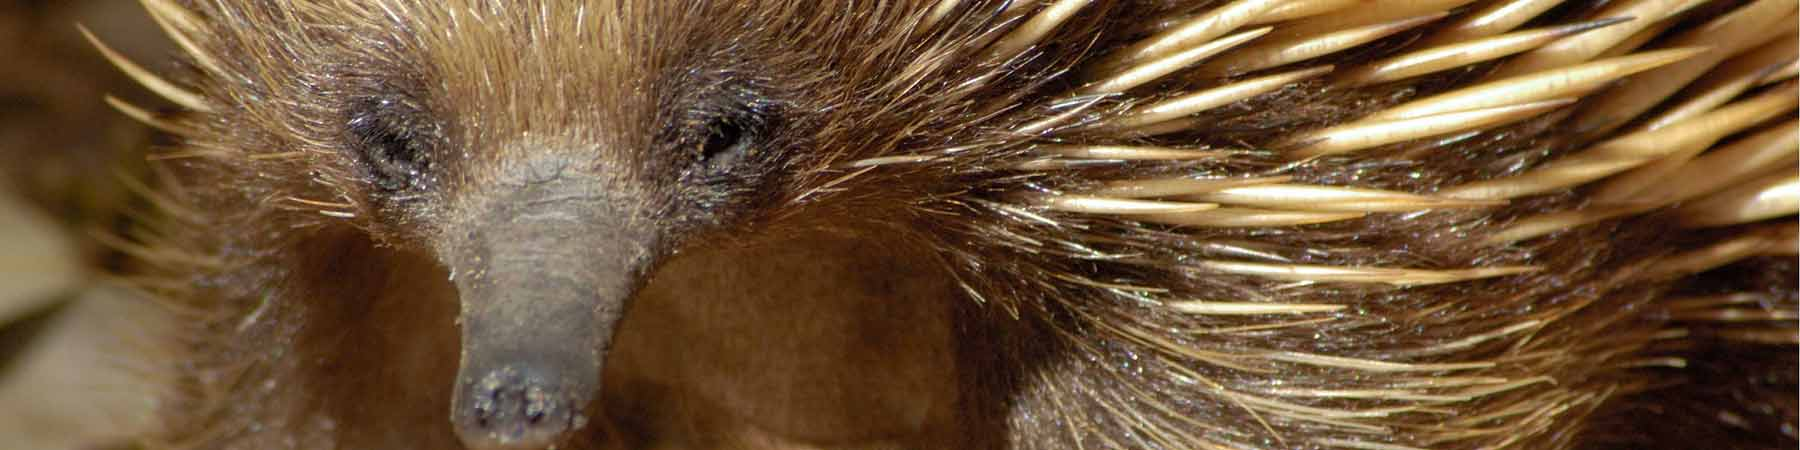 The echidna is found in parks throughout Australia